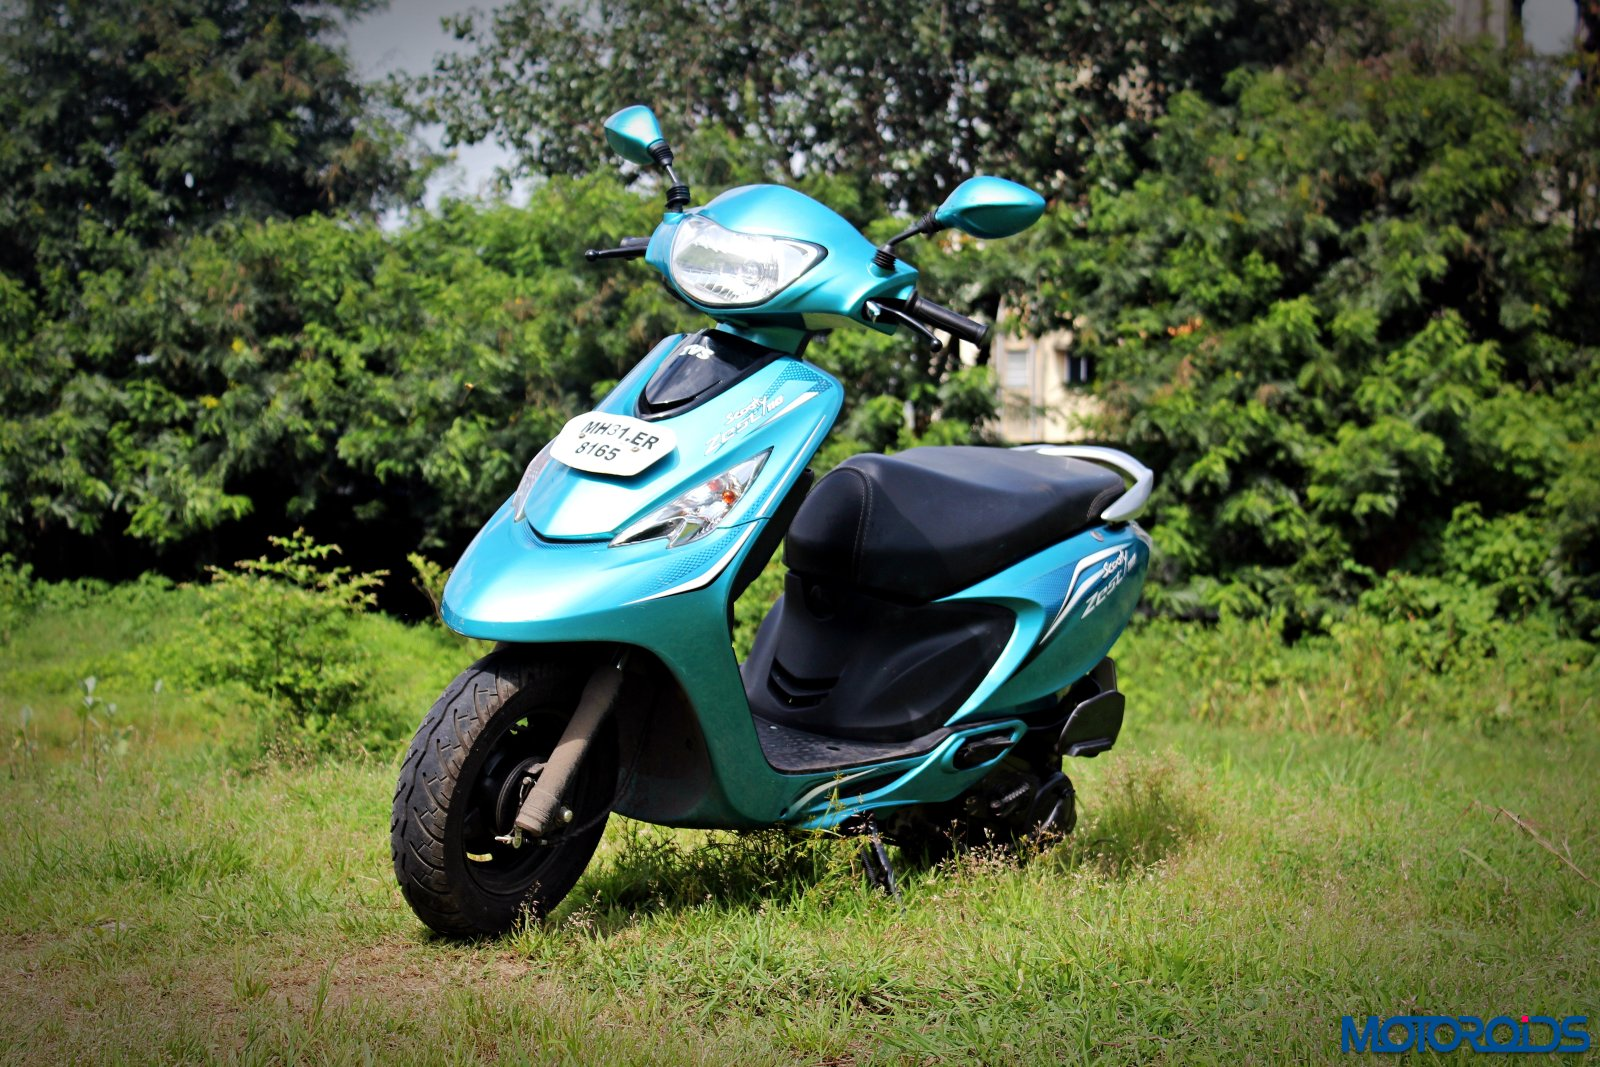 tvs motor company Tvs while achieving a good growth in motorcycle sales has recorded negative  growth in scooter sales for july 2016 what was the reason for.